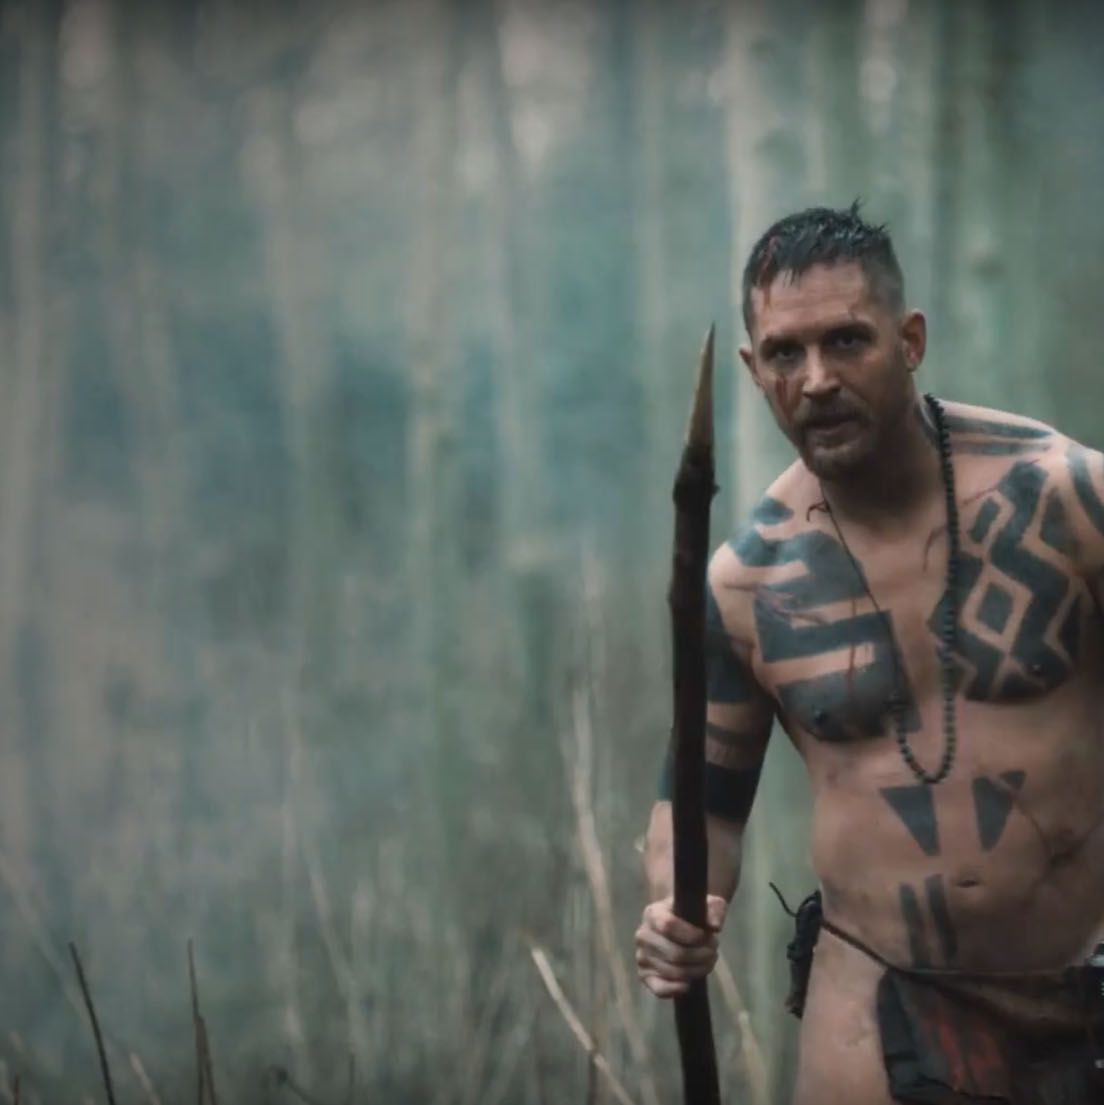 "<p>This eight-episode miniseries, created by Tom Hardy with his father, Chip, and written by Steven Knight (<em data-redactor-tag=""em"" data-verified=""redactor"">Peaky Blinders</em><span class=""redactor-invisible-space"">,&nbsp&#x3B;<em data-redactor-tag=""em"" data-verified=""redactor"">Allied</em><span class=""redactor-invisible-space"">), follows a man believed to be dead&nbsp&#x3B;(Hardy) who returns to London to&nbsp&#x3B;avenge his father's&nbsp&#x3B;death and claim his business.</span></span></p><p><span class=""redactor-invisible-space""><span class=""redactor-invisible-space""><strong data-verified=""redactor"" data-redactor-tag=""strong""><em data-redactor-tag=""em"" data-verified=""redactor"">Premieres Tuesday, January 10 at 10 PM on FX.</em></strong><br></span></span></p>"